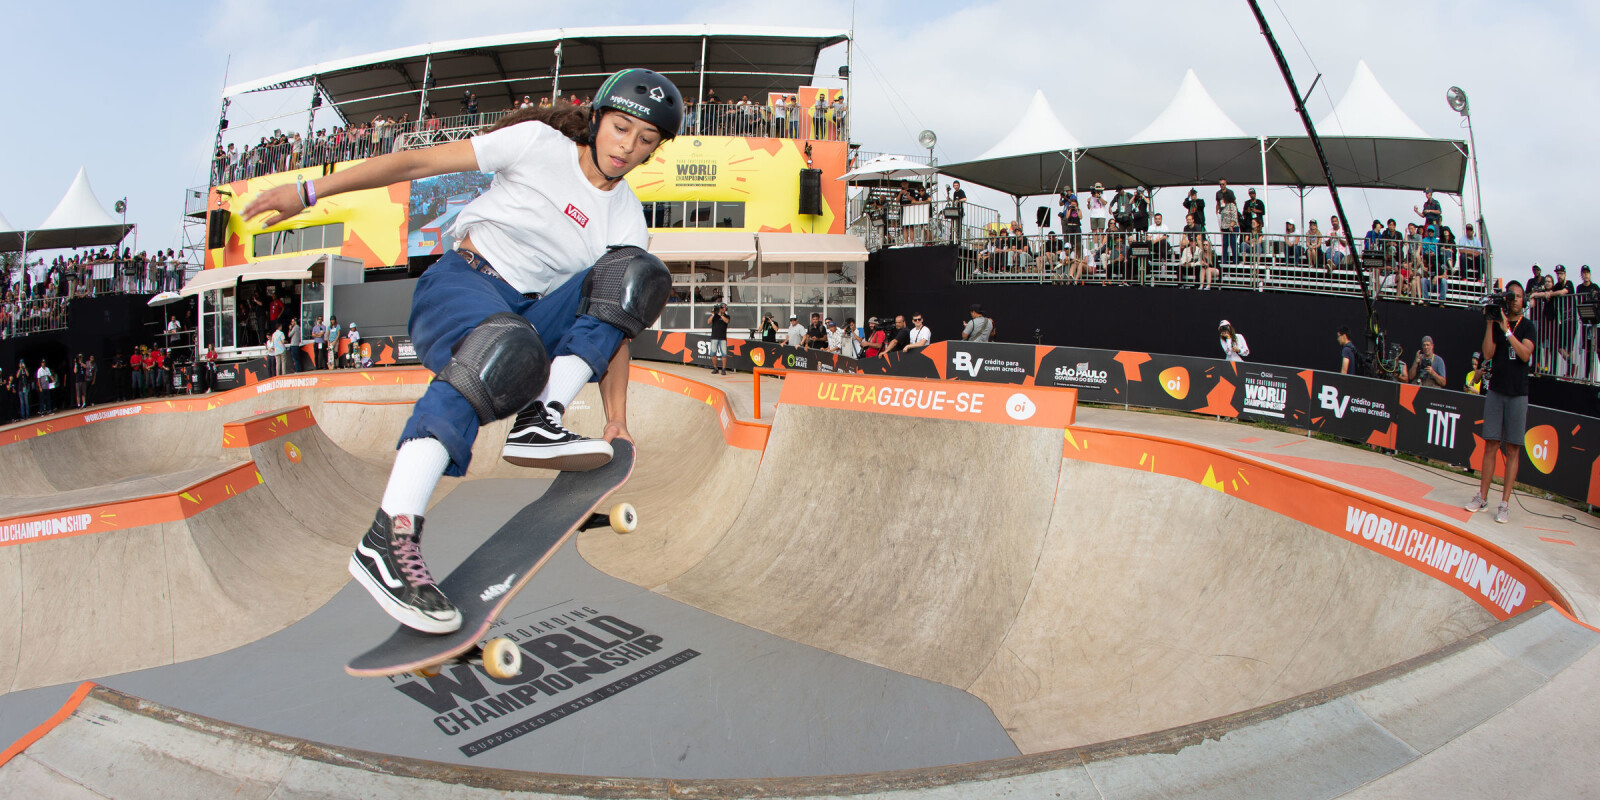 Images from the STU World Skate Park Championships Sao Paulo, Brazil.